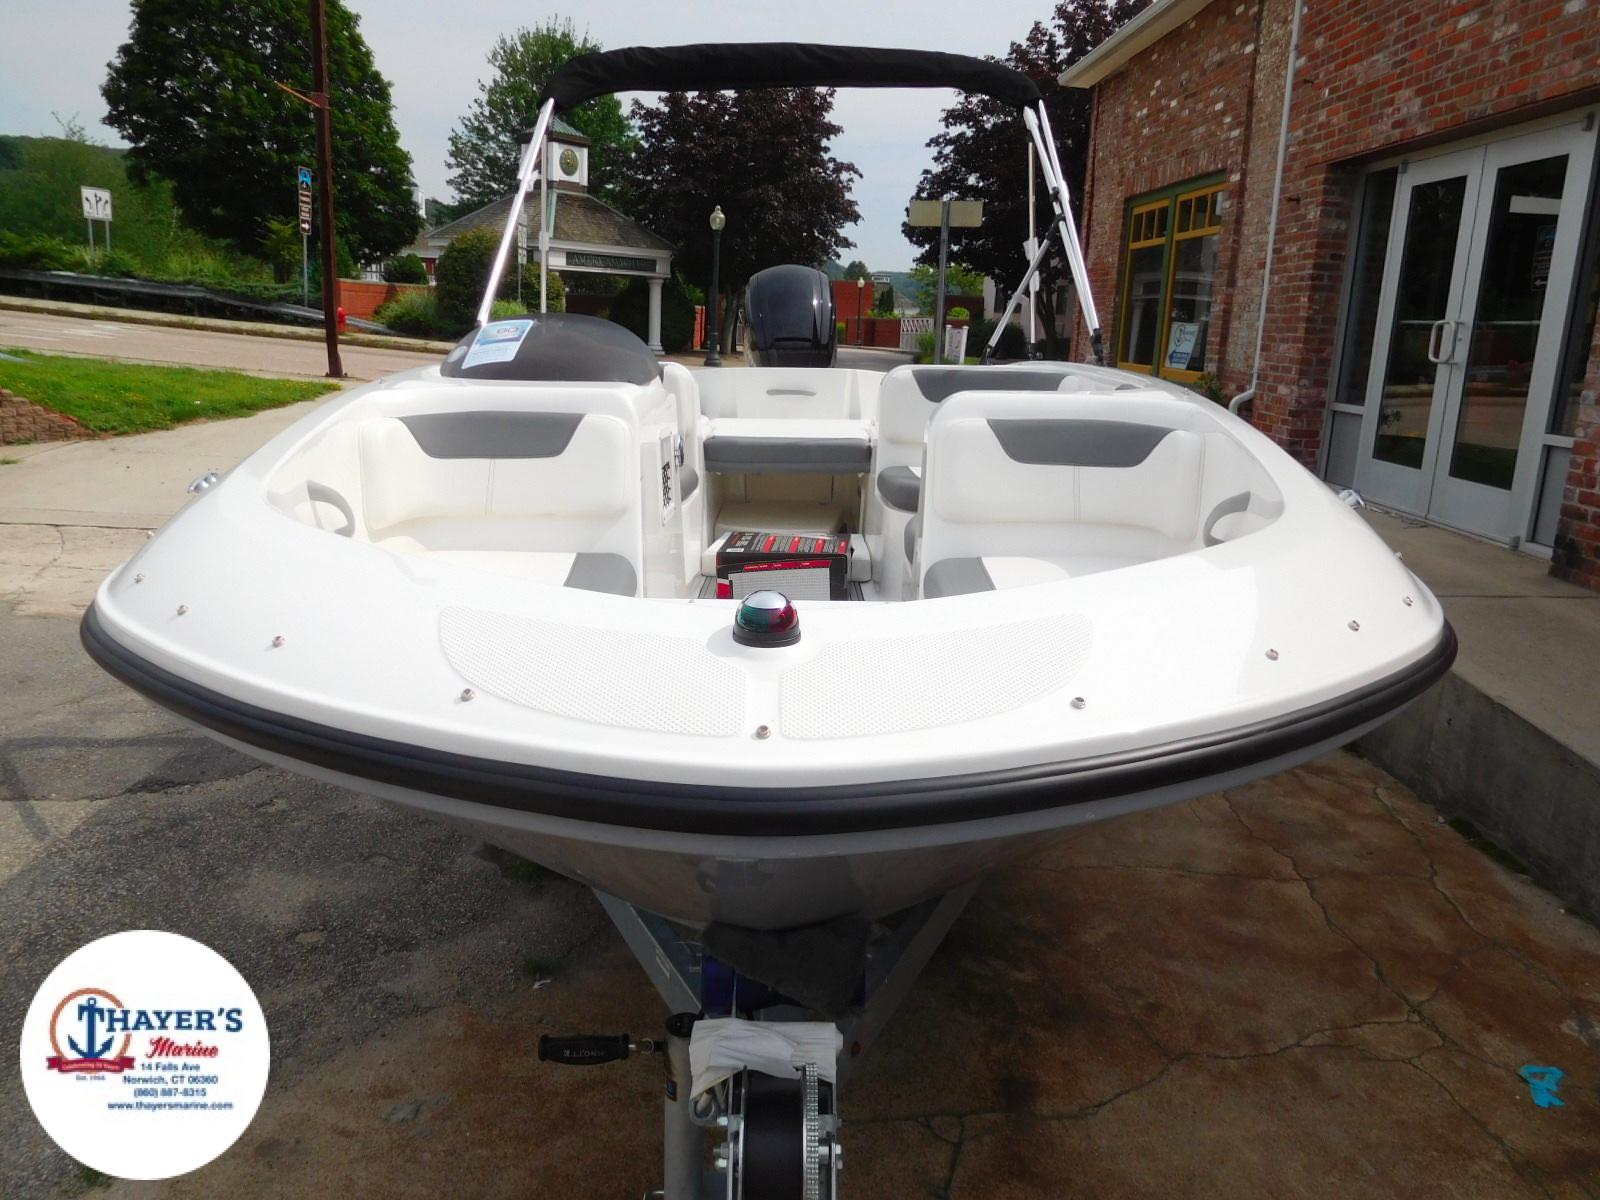 2018 Bayliner boat for sale, model of the boat is Element E18 & Image # 10 of 17